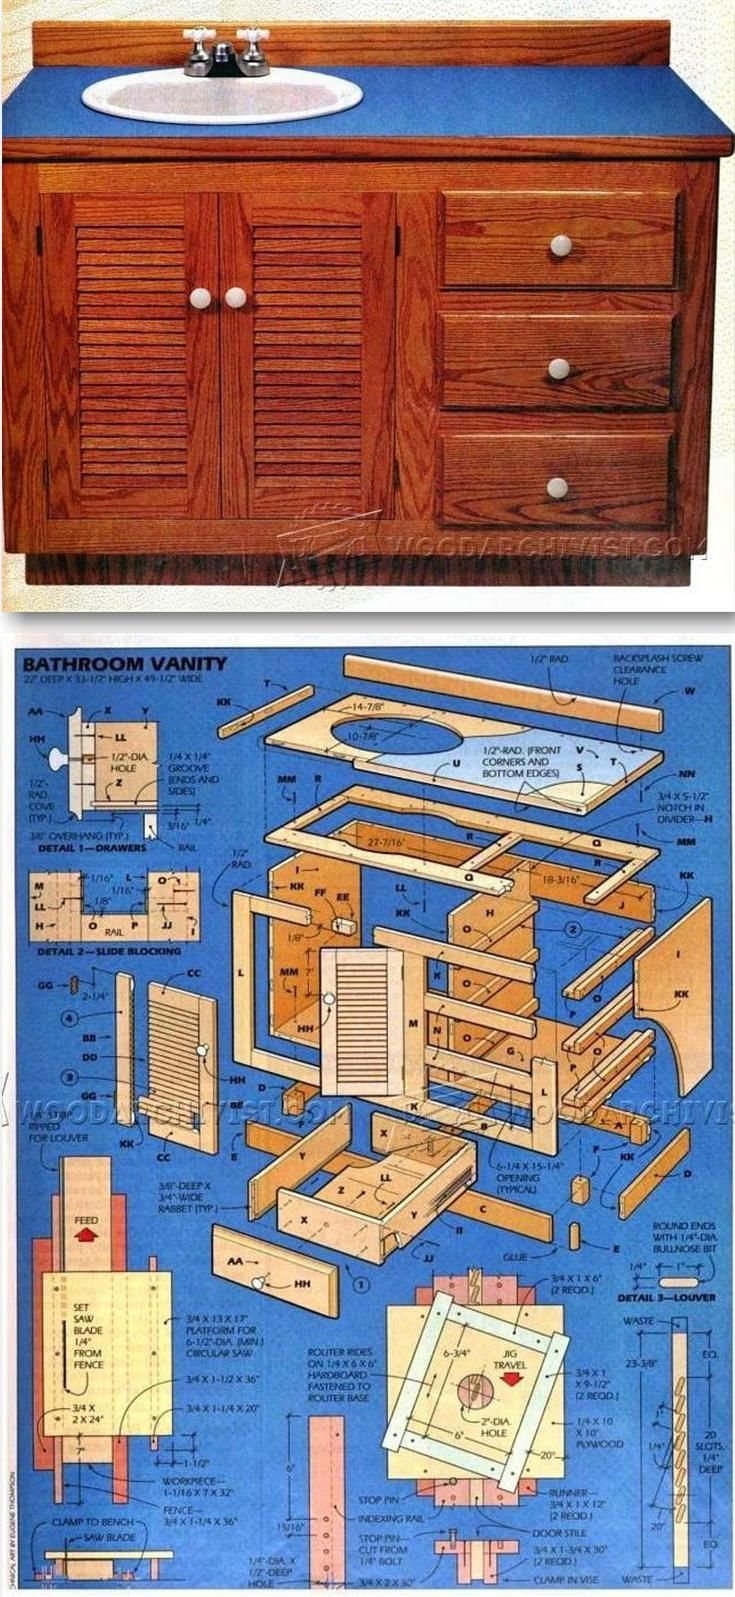 Bathroom Vanity Plans - Furniture Plans and Projects ...